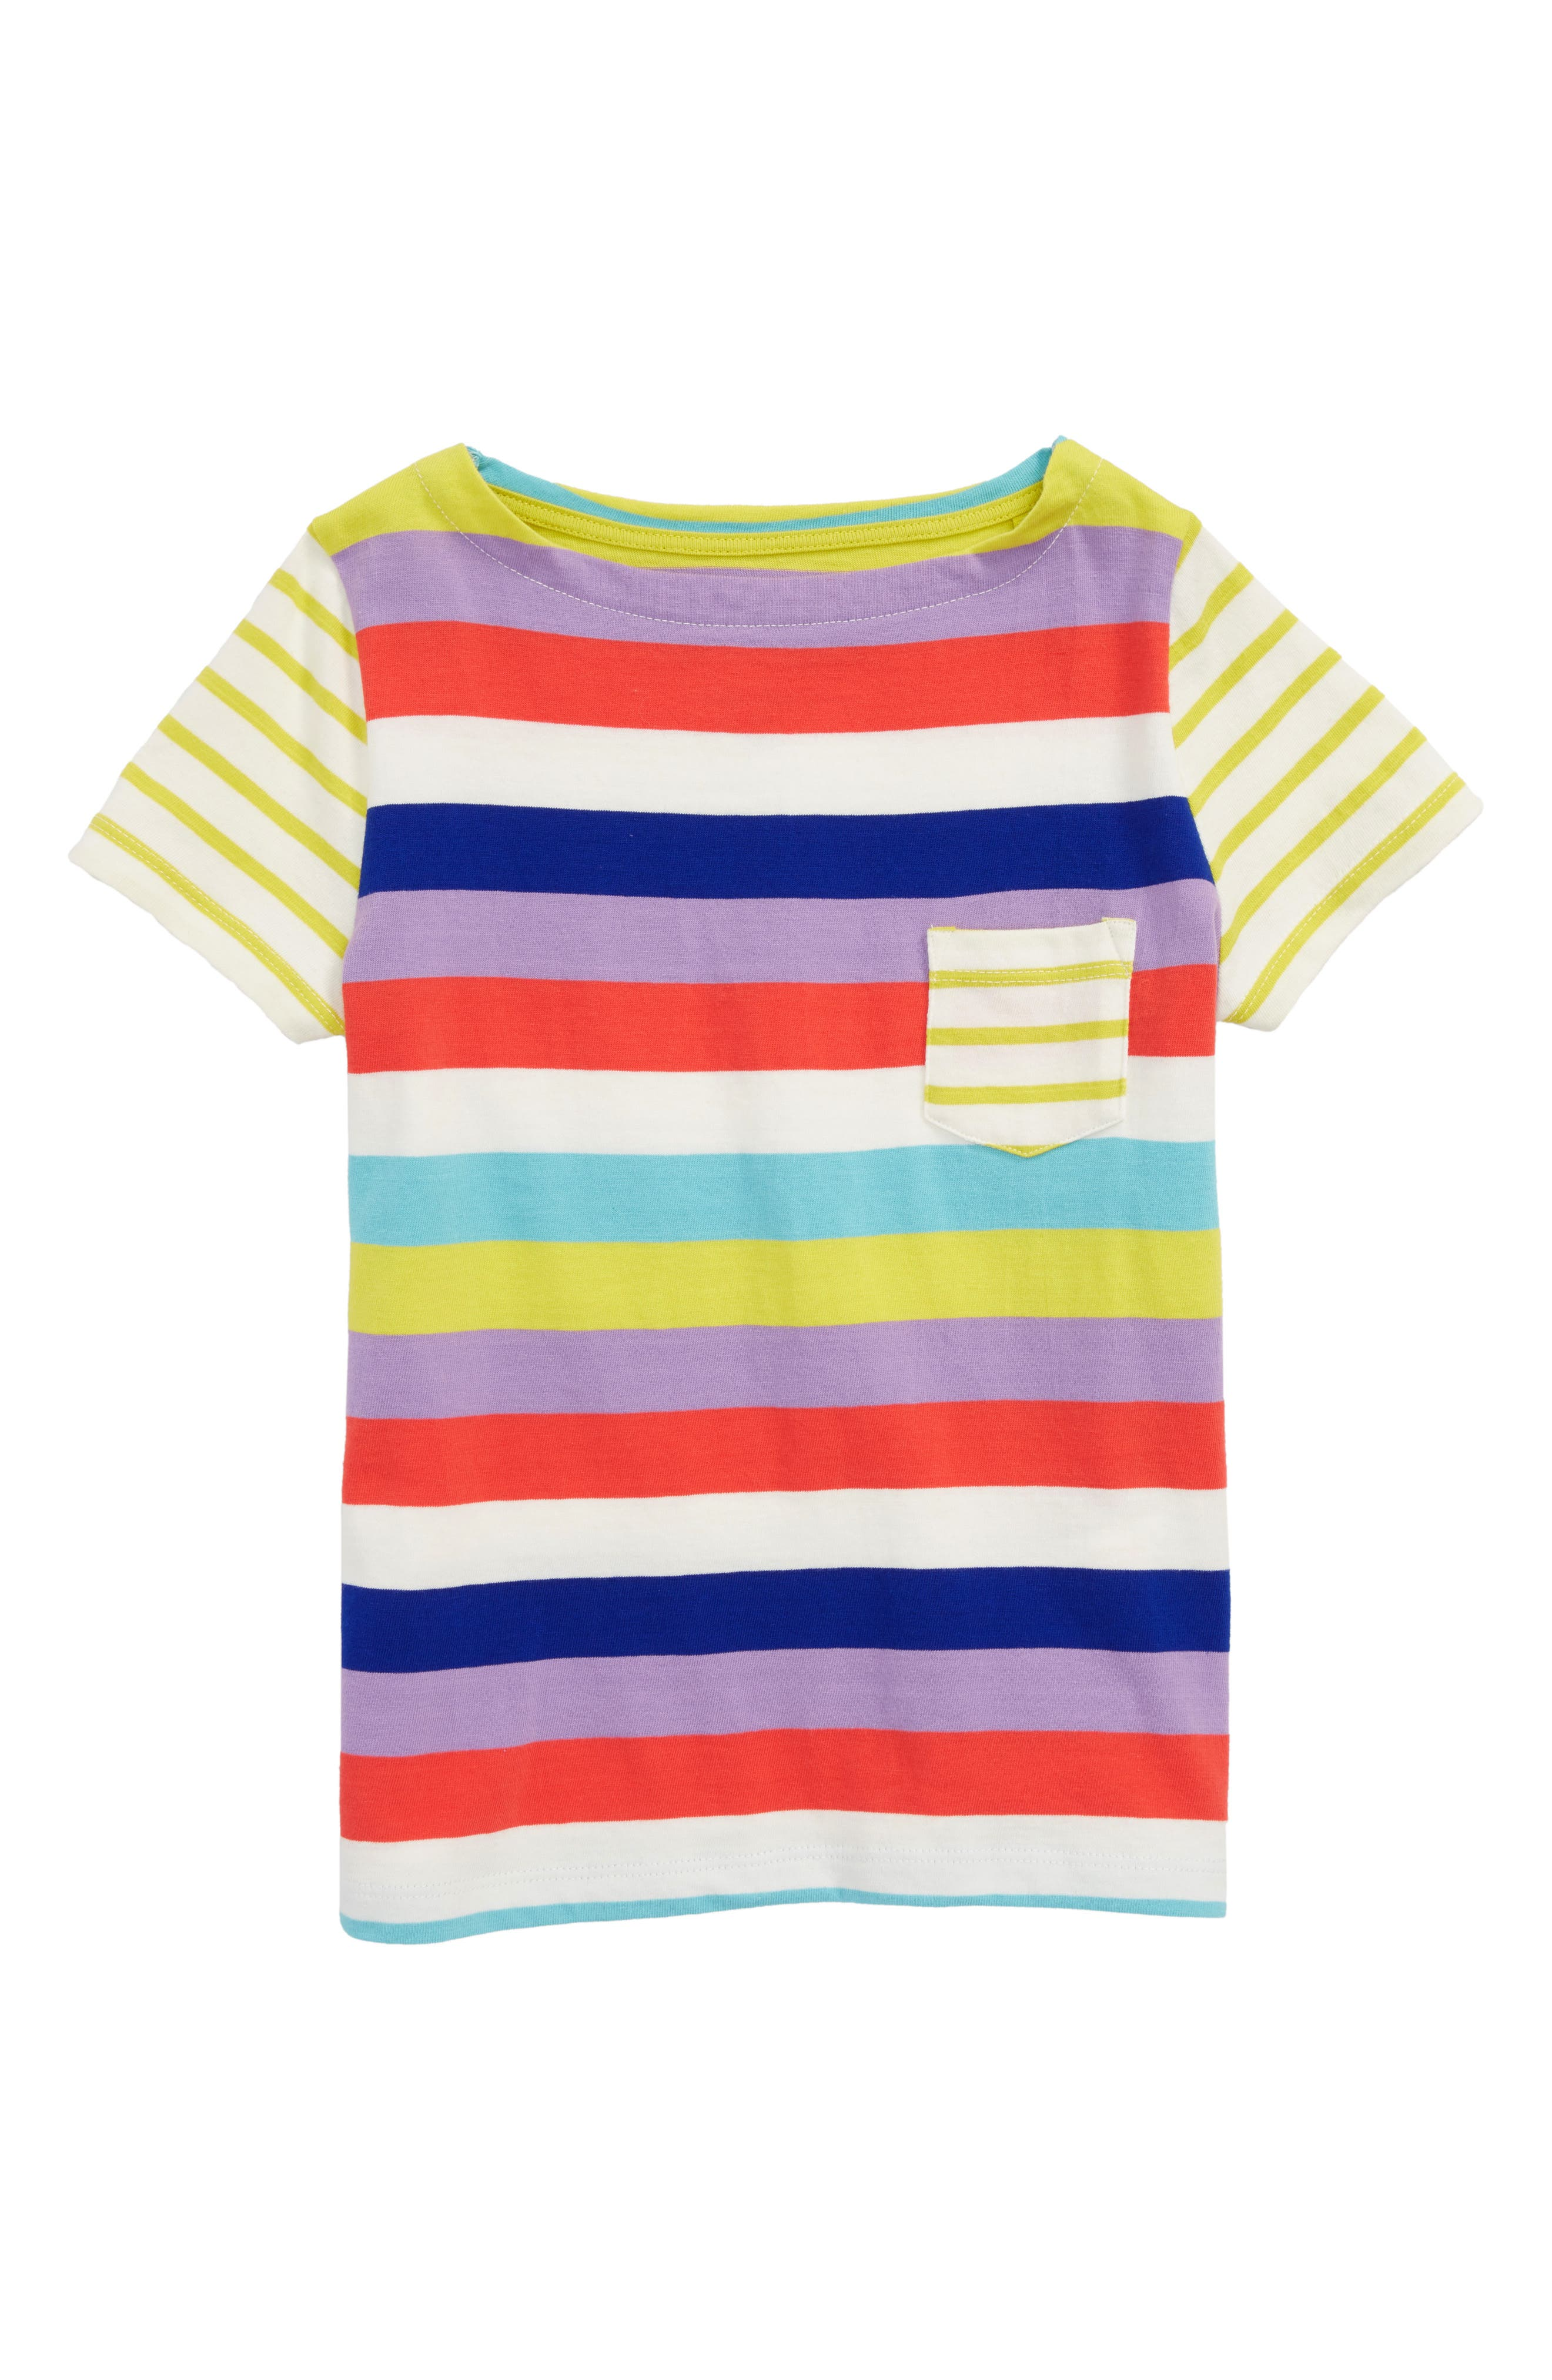 Summer Hotchpotch Tee,                         Main,                         color, 651